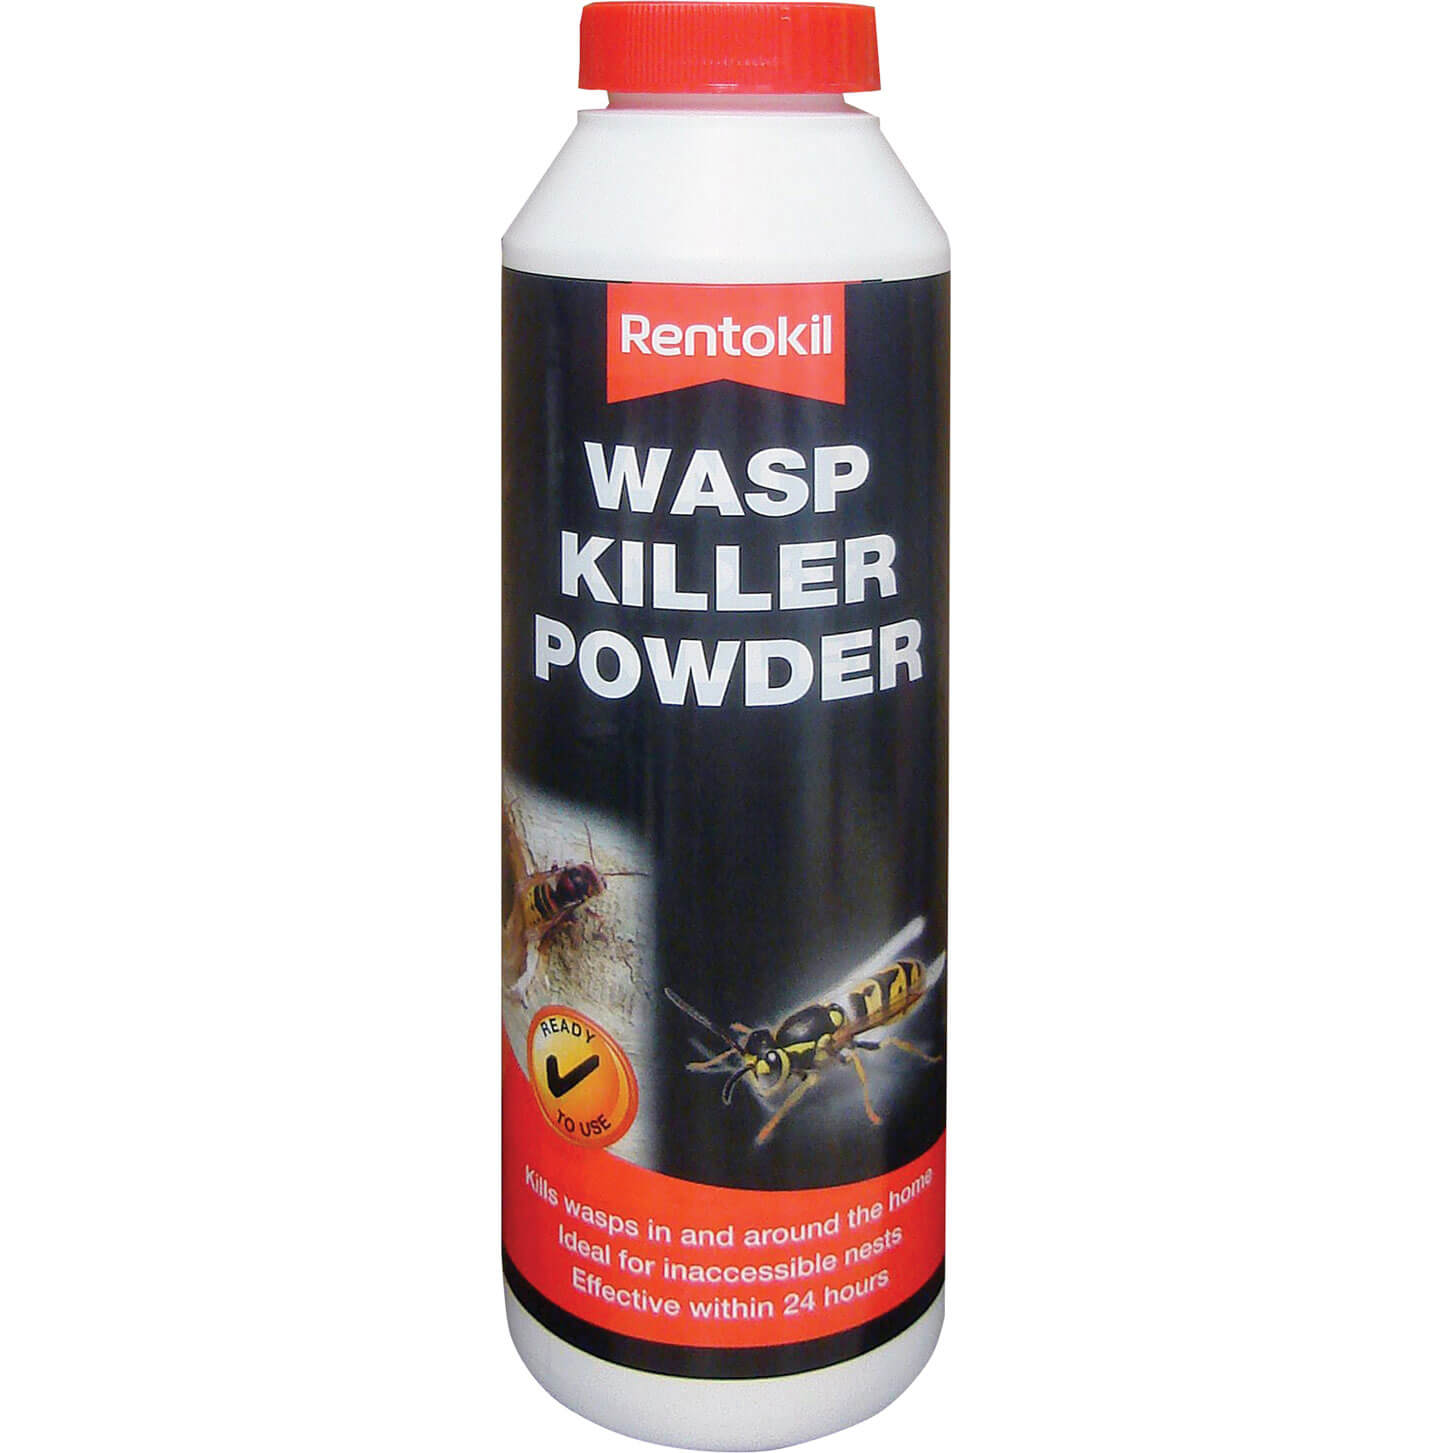 Image of Rentokil Wasp Killer Powder 300g